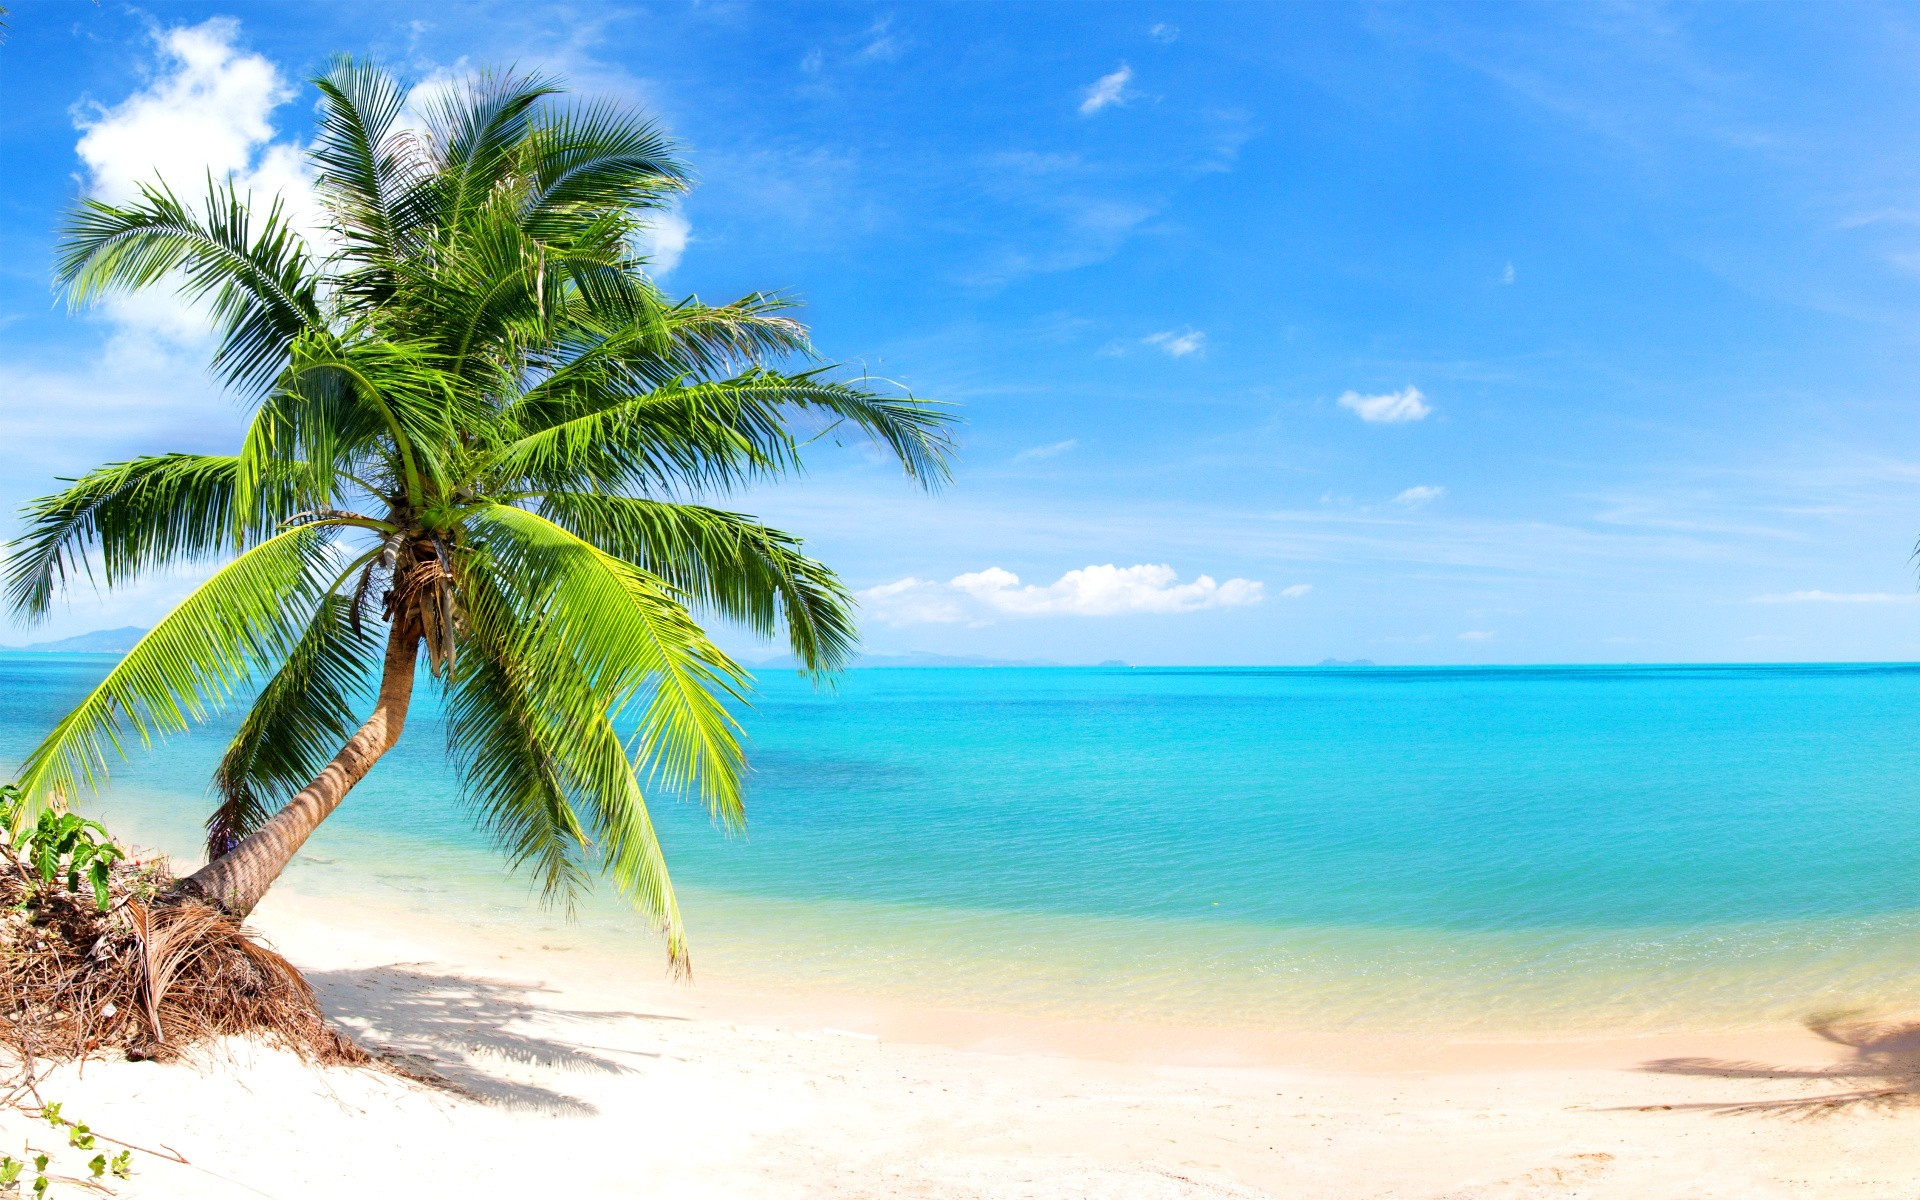 Free download Palm Tree on Tropical Beach Full HD ...